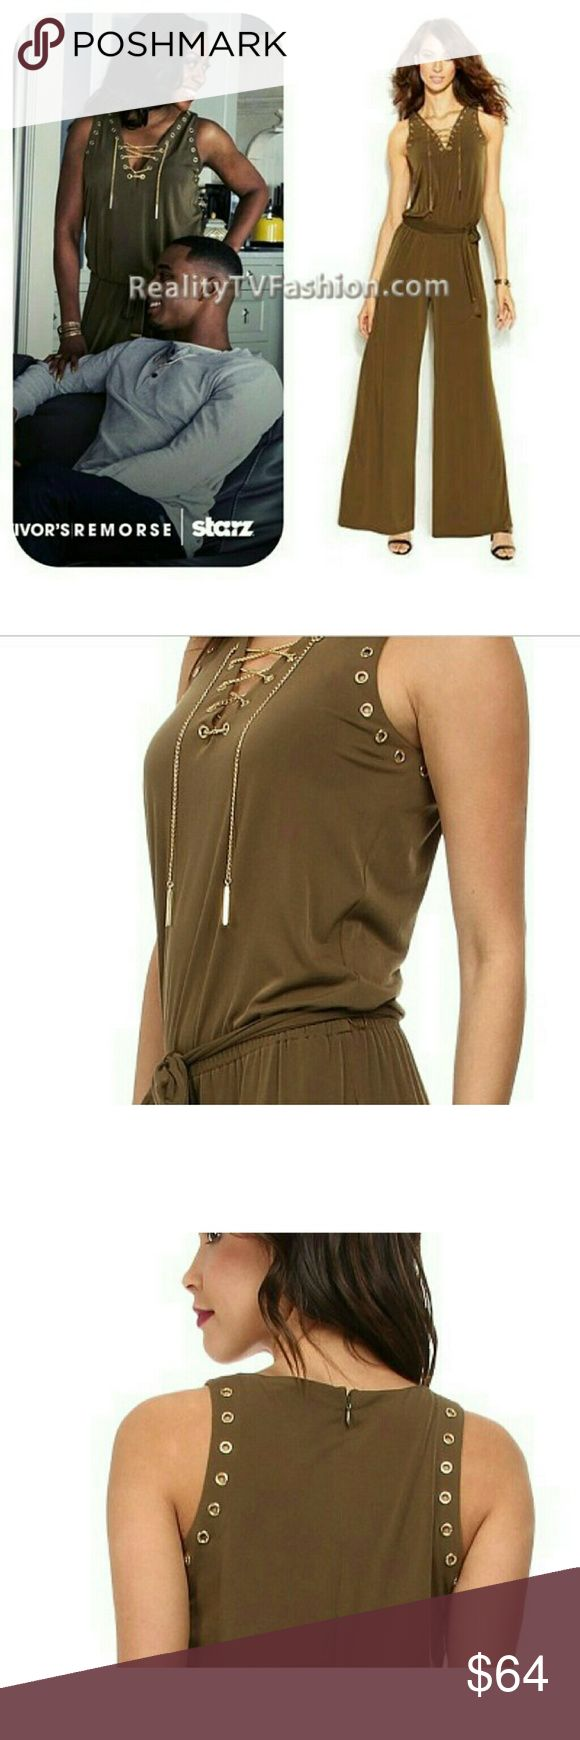 """Michael Kors Jumpsuit Tv show called """"Survivor's Remorse"""" Cassie Calloway (Tichina Arnold) appeared in this Michael Kors Sleeveless Lace Up Jumpsuit in Duffle. This Michael Kors soft jersey jumper has a V-neckline, lace up chain placket, elastic waist and grommet detail to the neckline and sleeves. *does not have a belt* Size Med. Worn once, great condition Michael Kors Pants Jumpsuits & Rompers"""